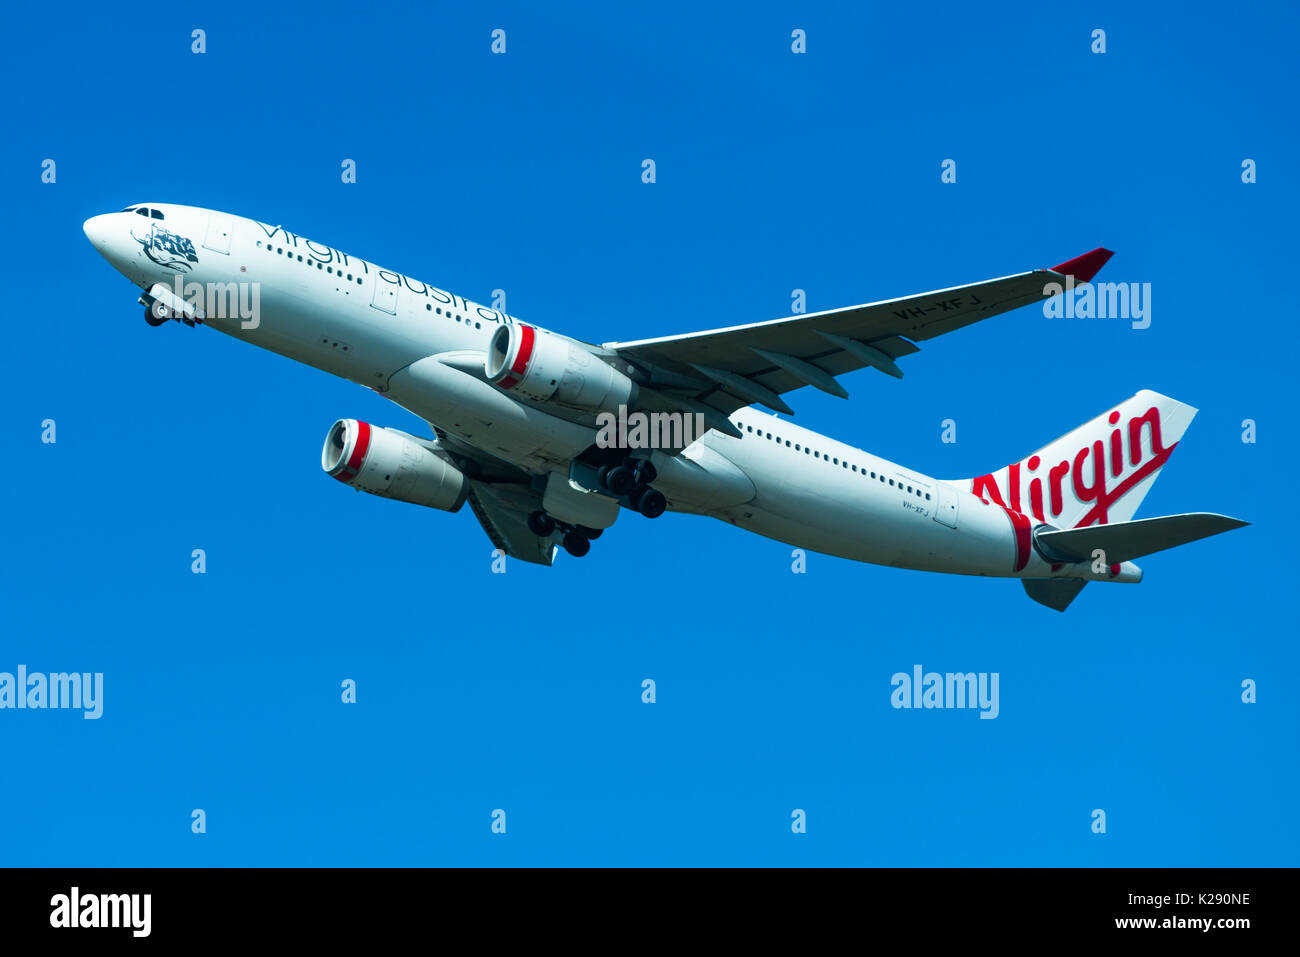 Virgin Australia passenger airplane taking off from Sydney International Airport, New South Wales, Australia. - Stock Image